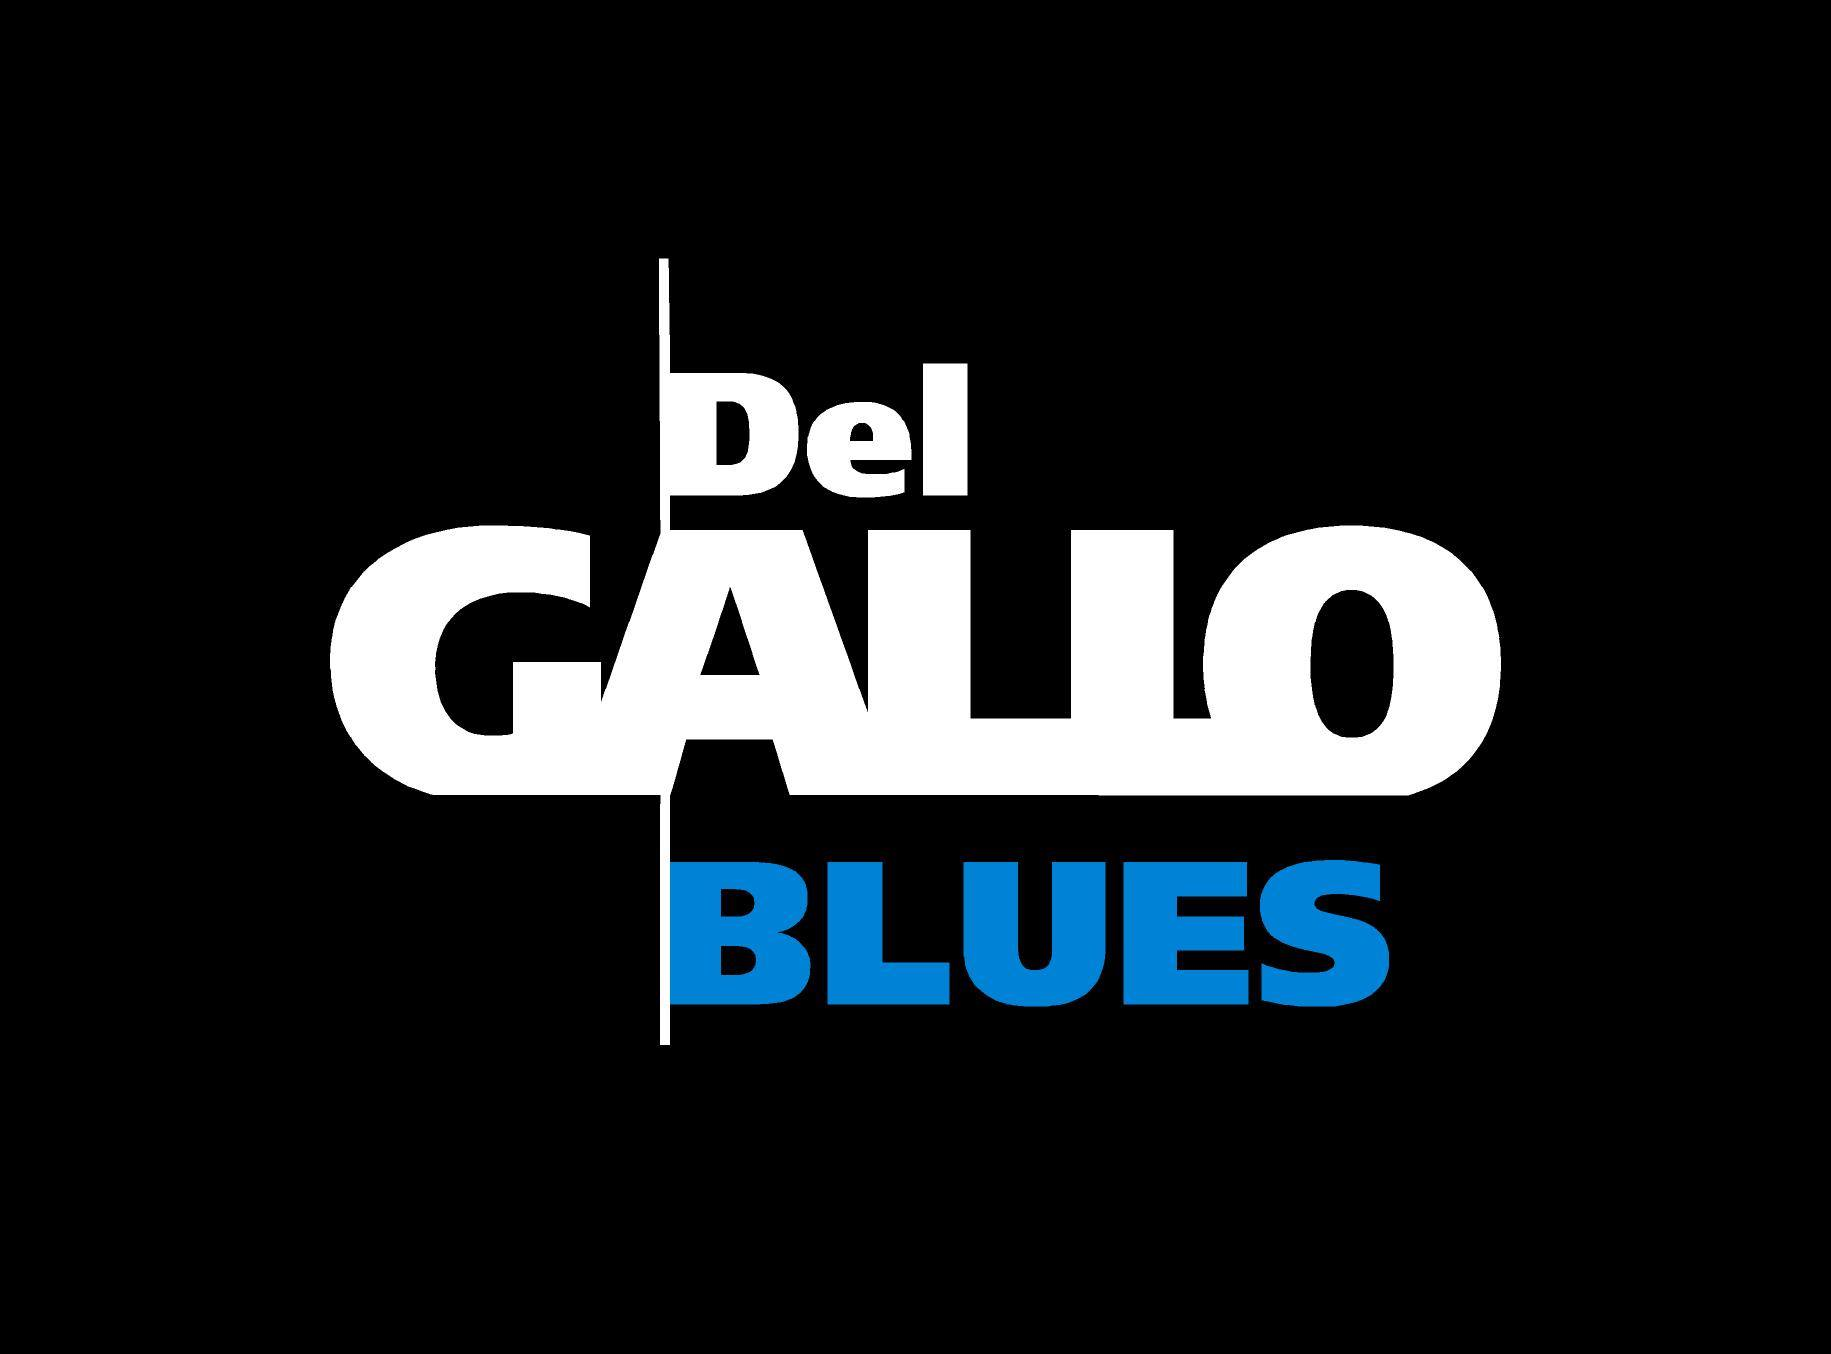 Del Gallo Blues